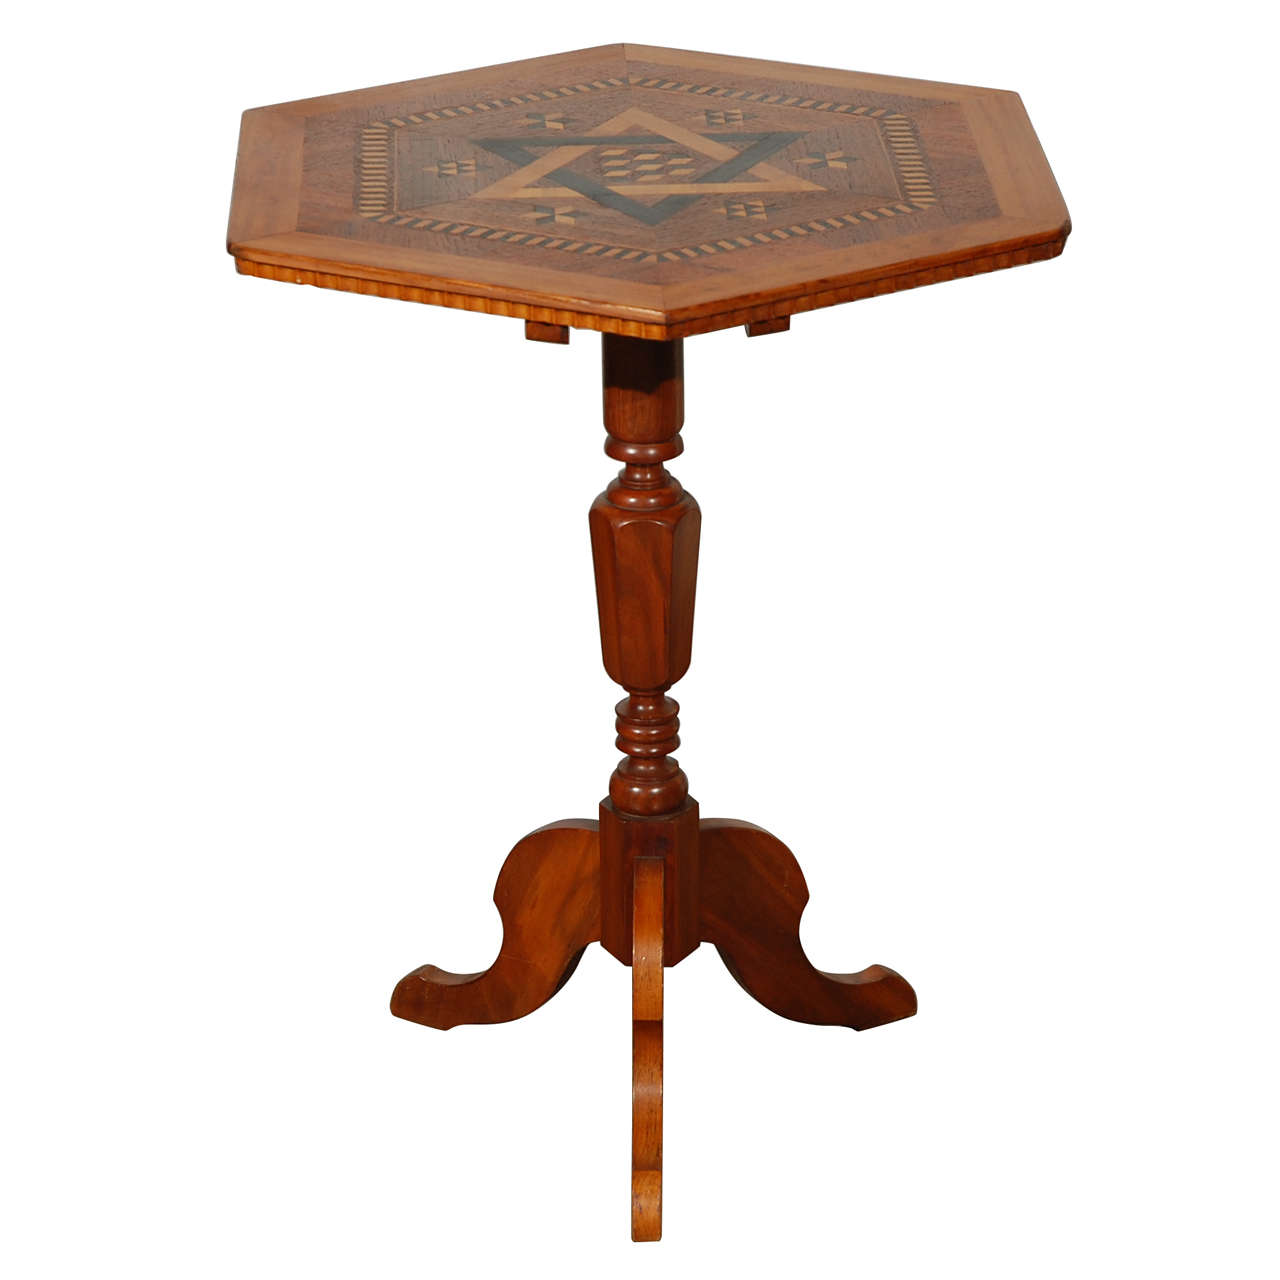 Antique Parquetry Top Game Table or Candle Stand at 1stdibs